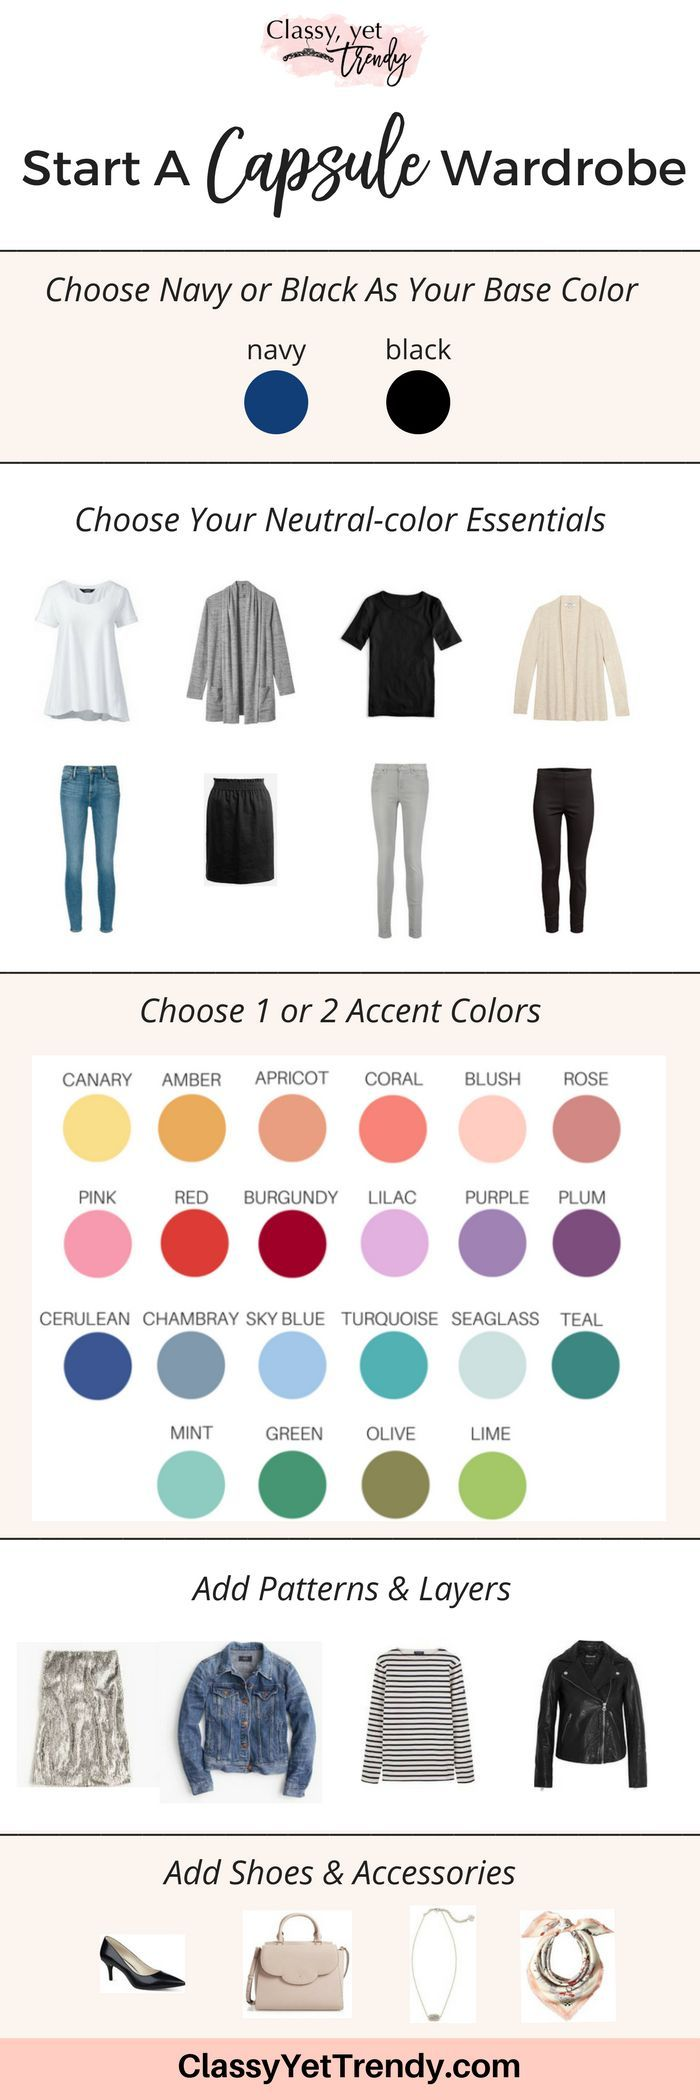 Learn how to create a capsule wardrobe using the 5-step visual guide! Step-by-step, you'll start your own capsule! Organize your closet with clothes, shoes and accessories and have several outfits for spring, summer, fall and winter.  You'll have outfit ideas, save money, have a neat closet and feel better about the way you look!